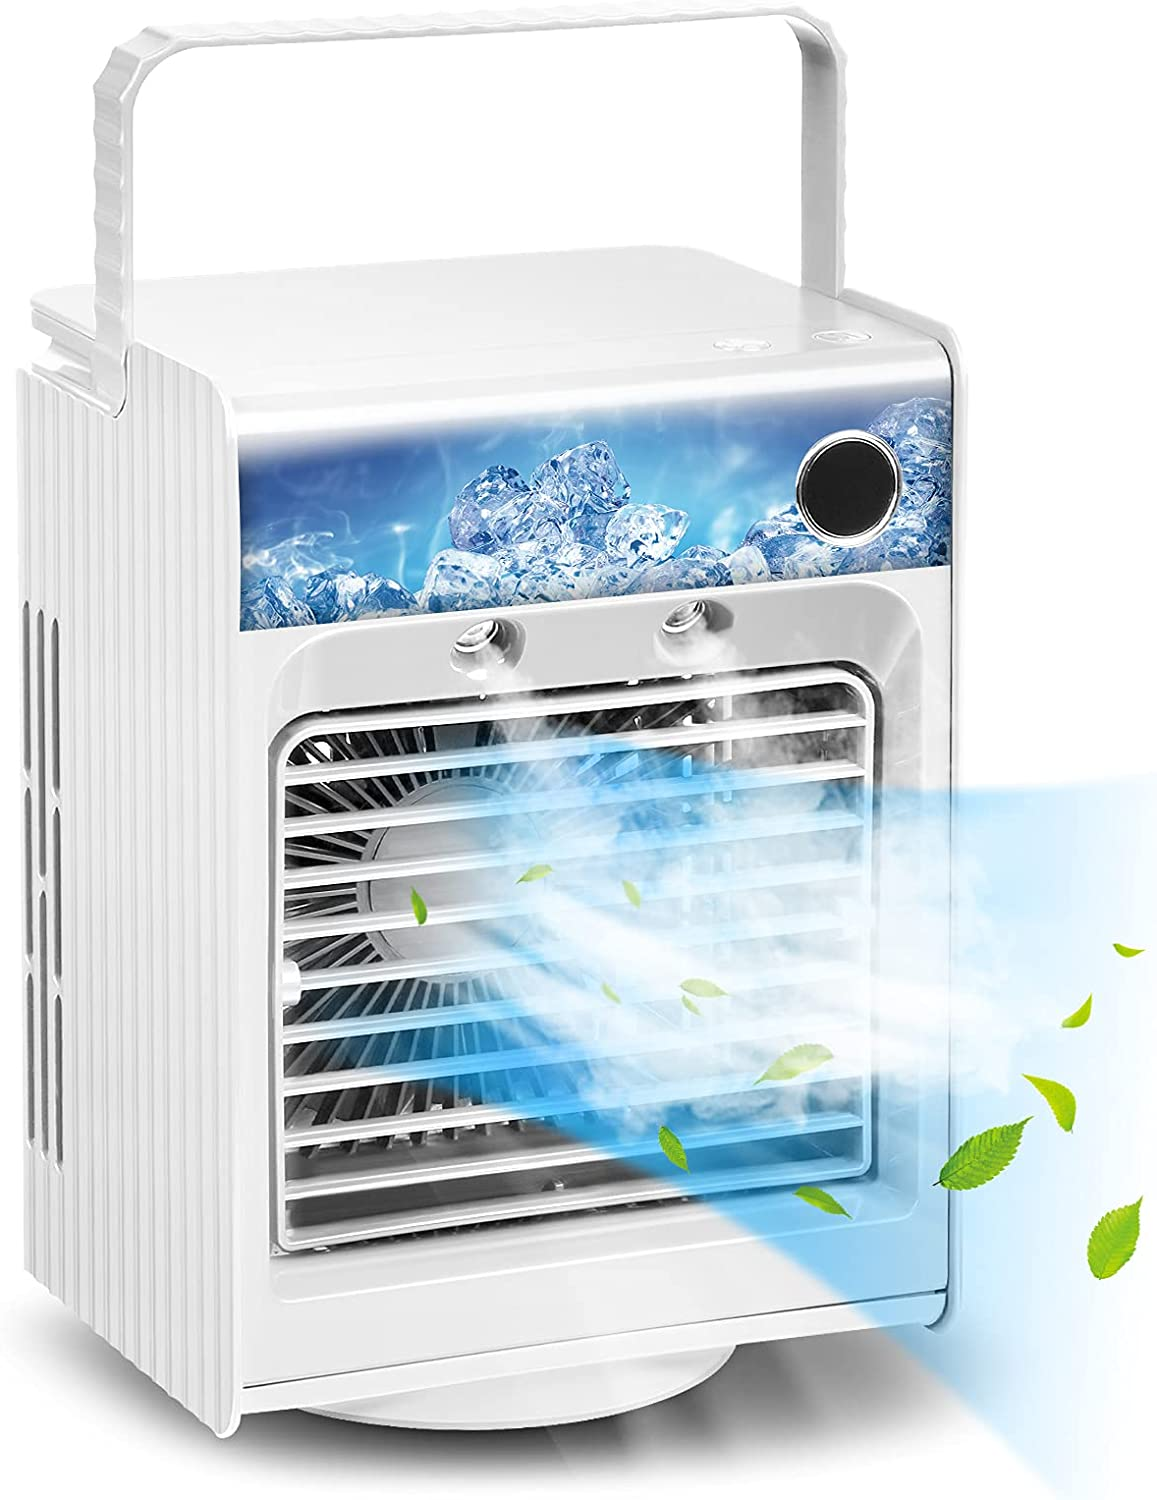 Wassteel Portable Air Conditioner Max 71% Animer and price revision OFF Fan Cooling Evaporative Pe